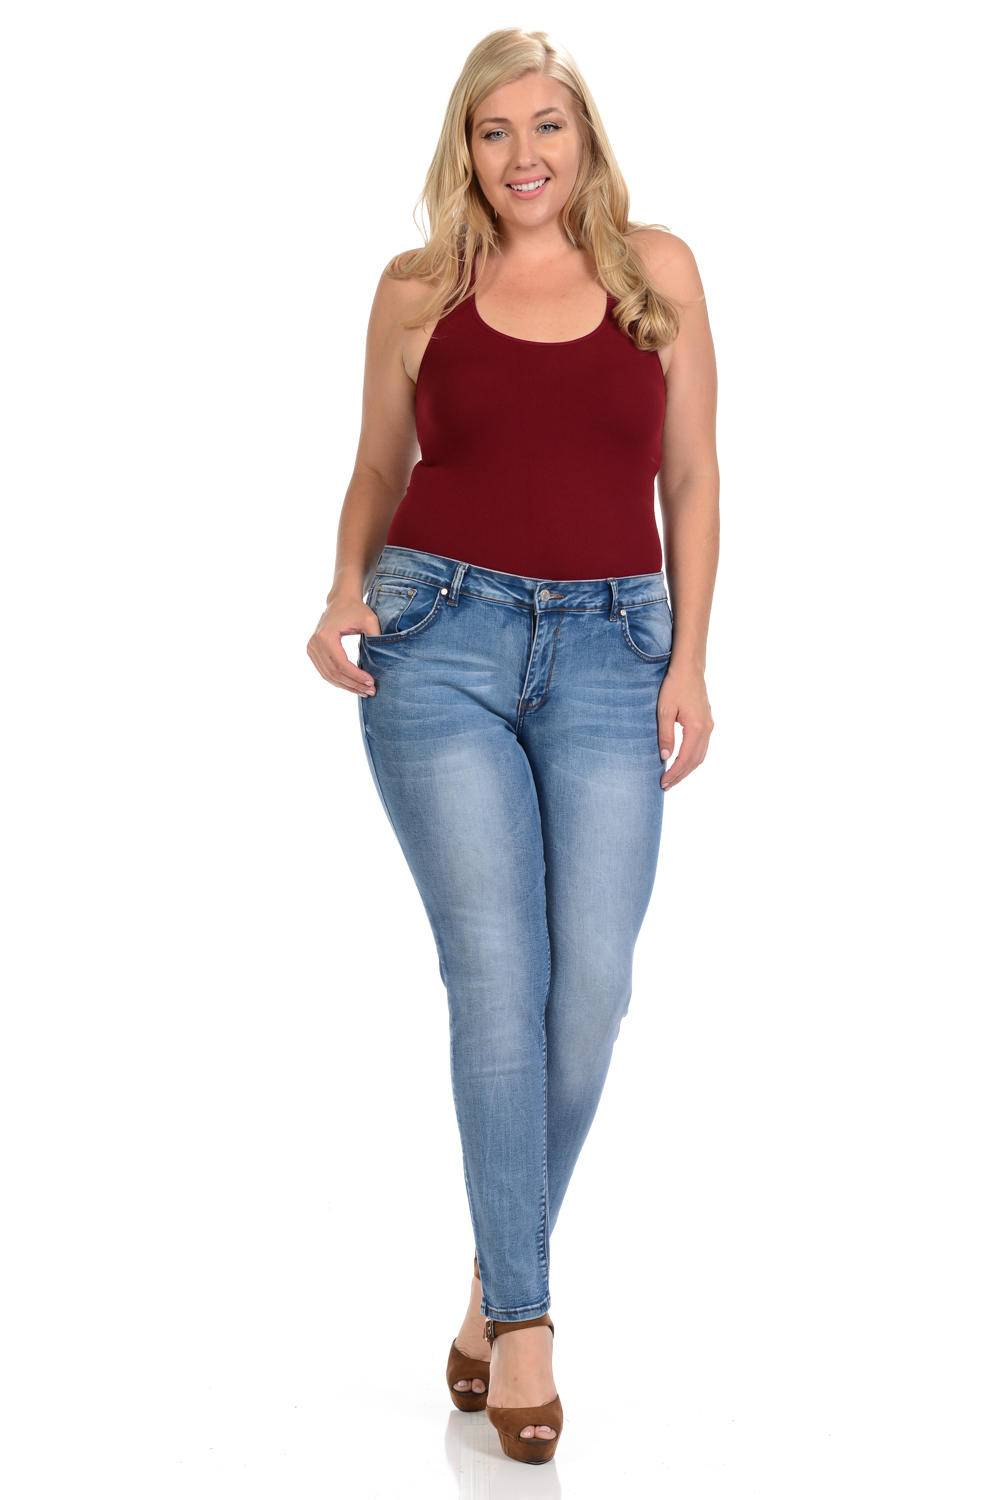 Womens Jeans Size Chart